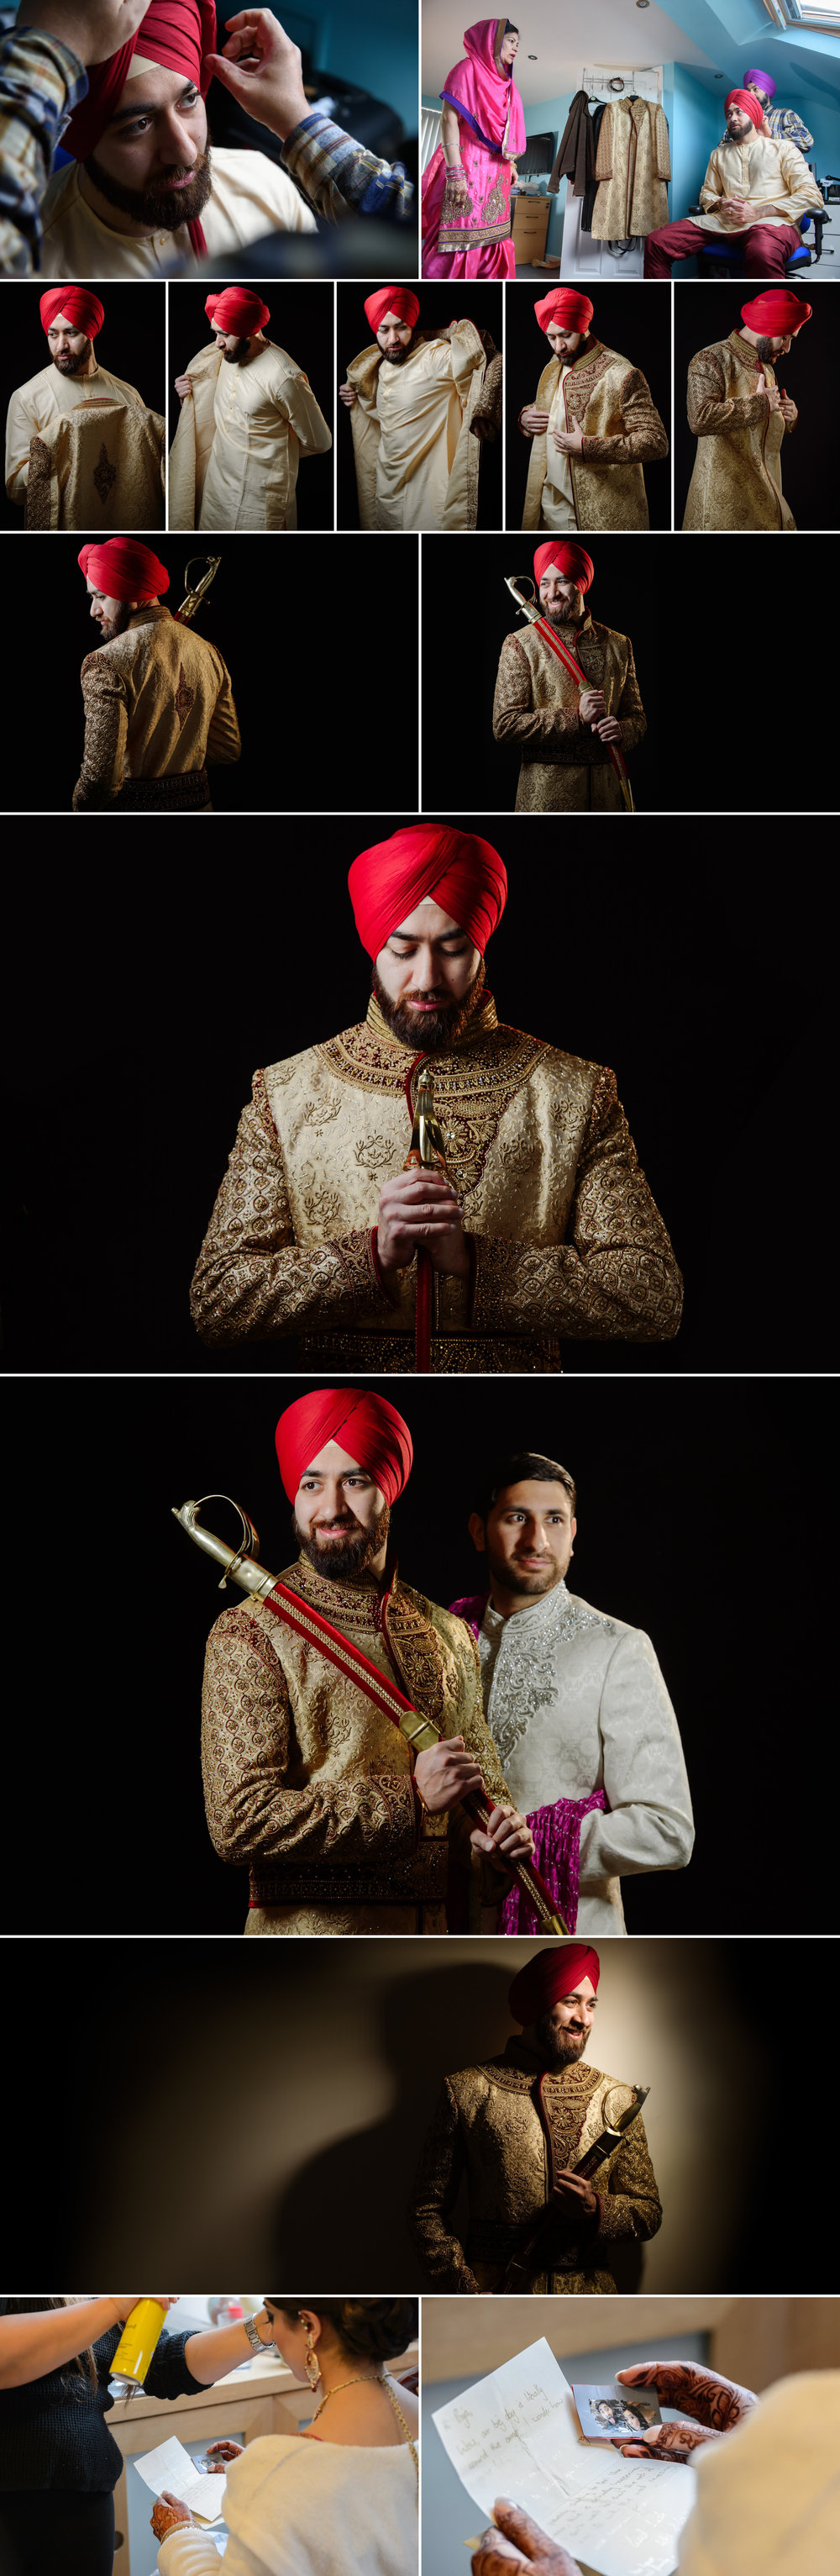 satnam photography sikh wedding ceremony alice way gurdwara london hounslow wedding photography-1